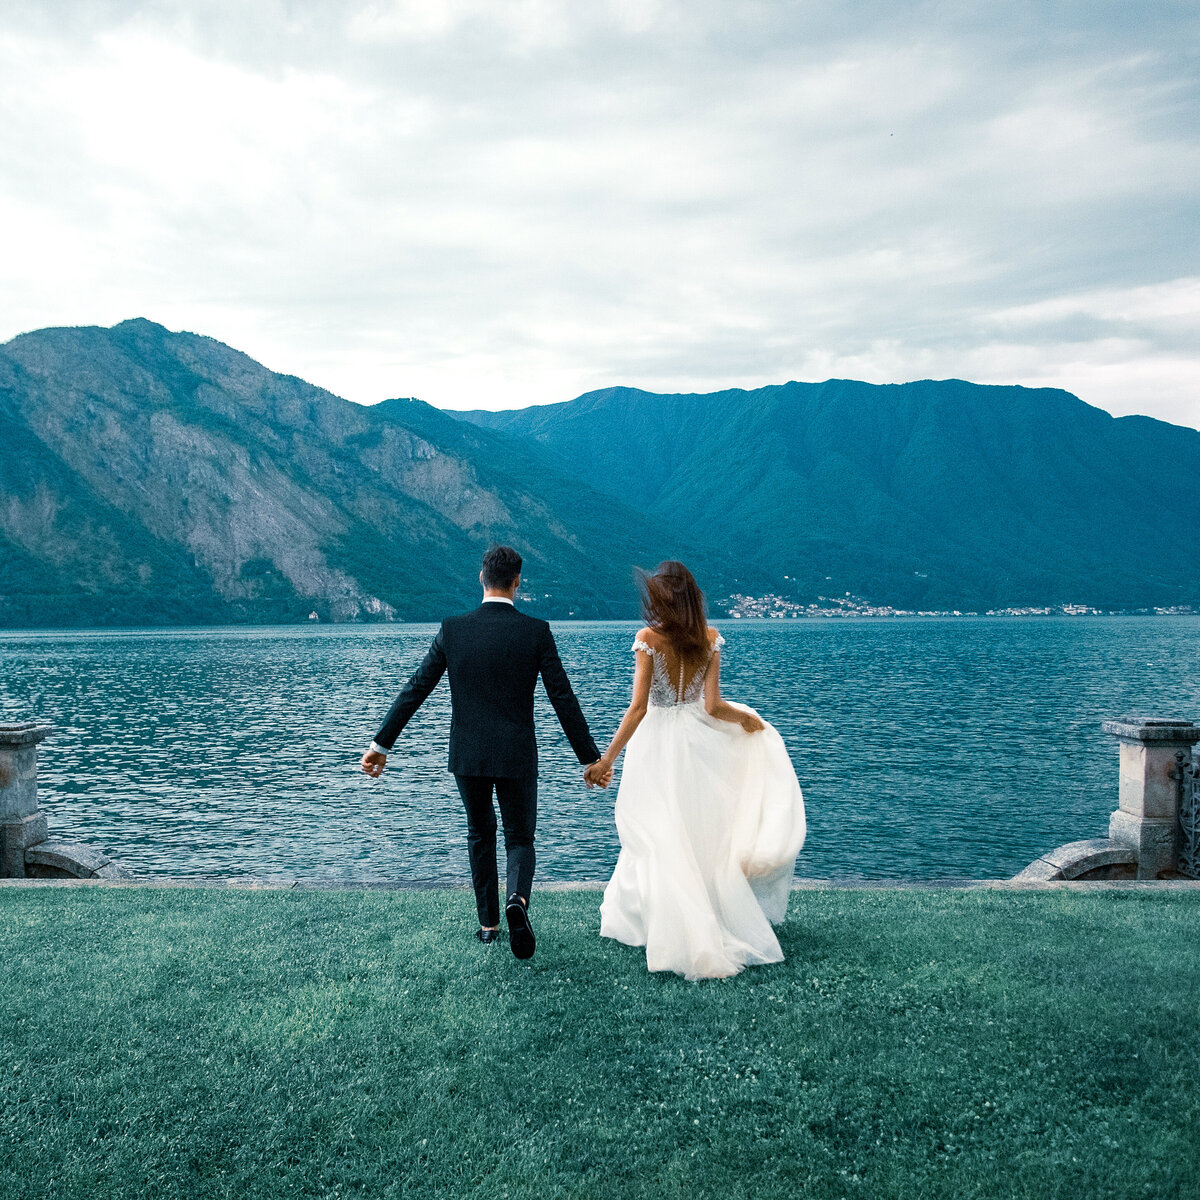 A wedding couple walking towards a lake in Lake Como, Italy on an overcast day/